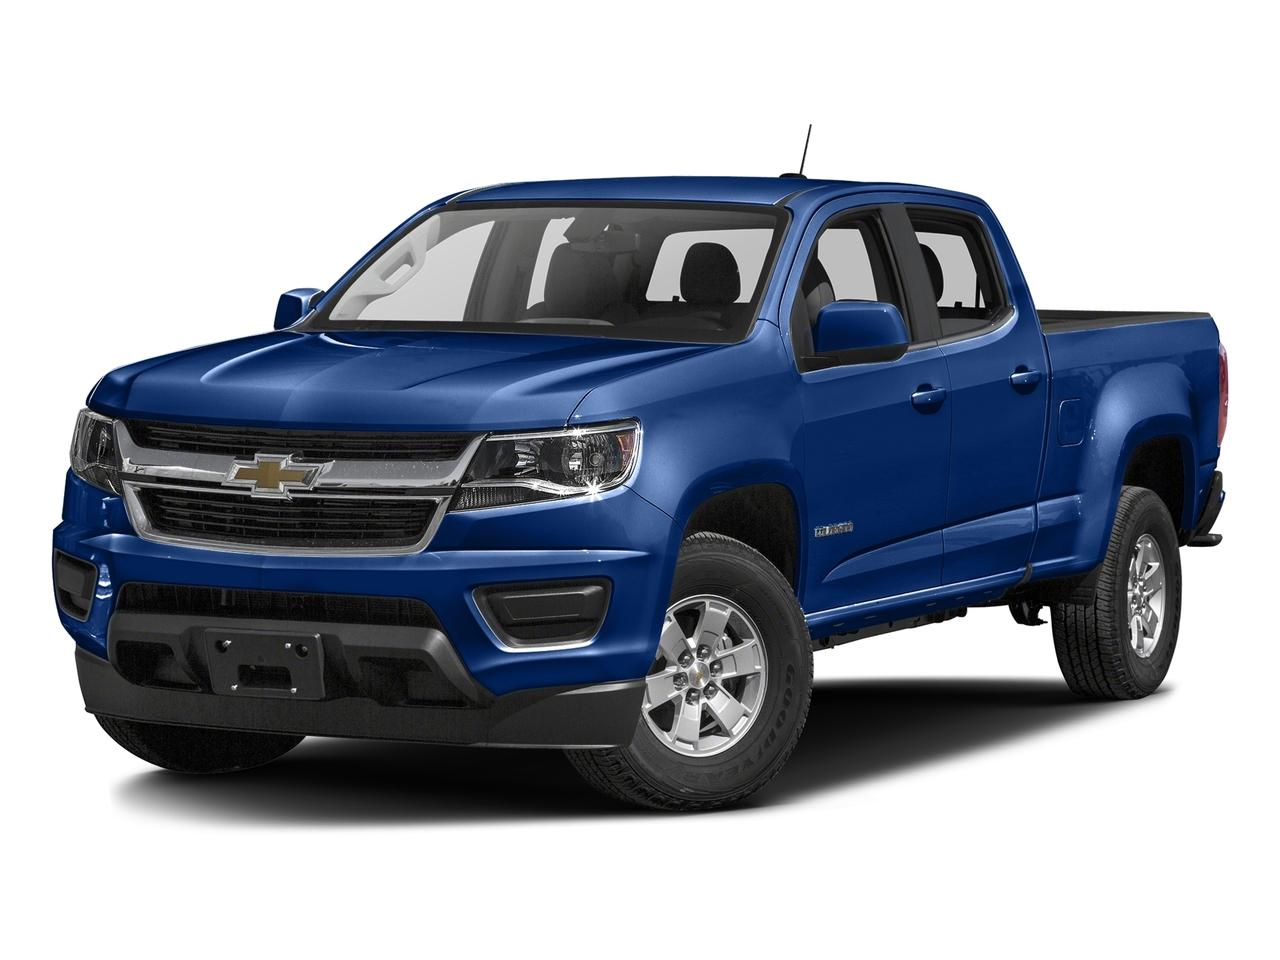 2016 Chevrolet Colorado Vehicle Photo in Easton, MD 21601